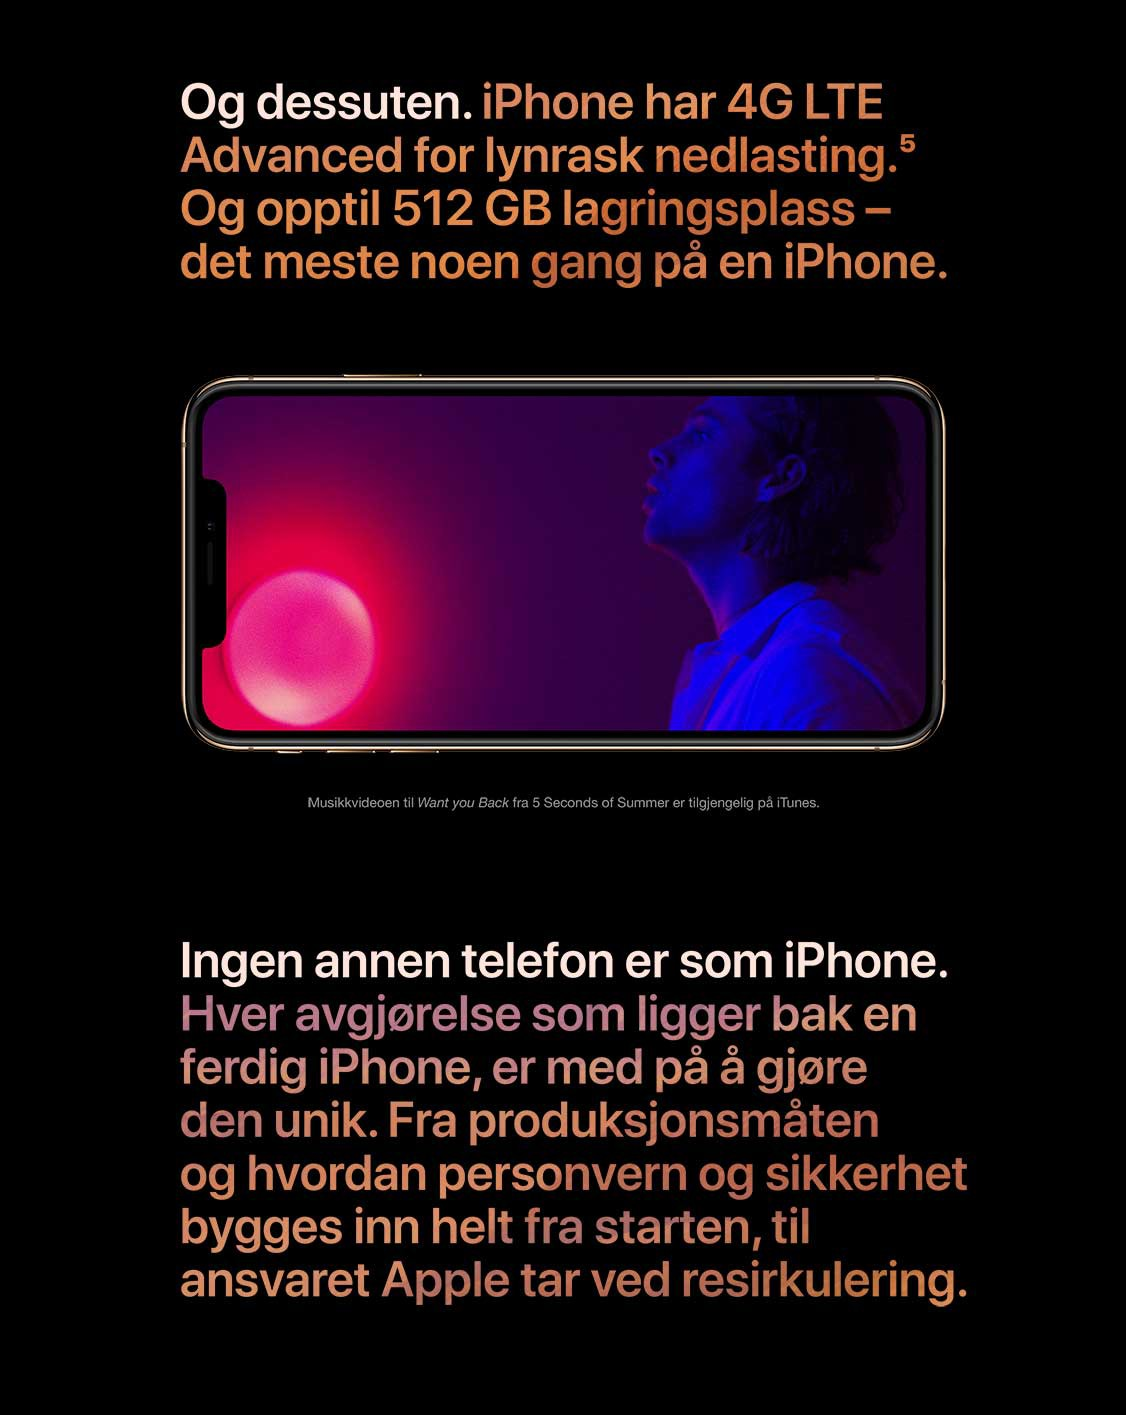 iPhone har 4G LTE Advanced for lynrask nedlastning